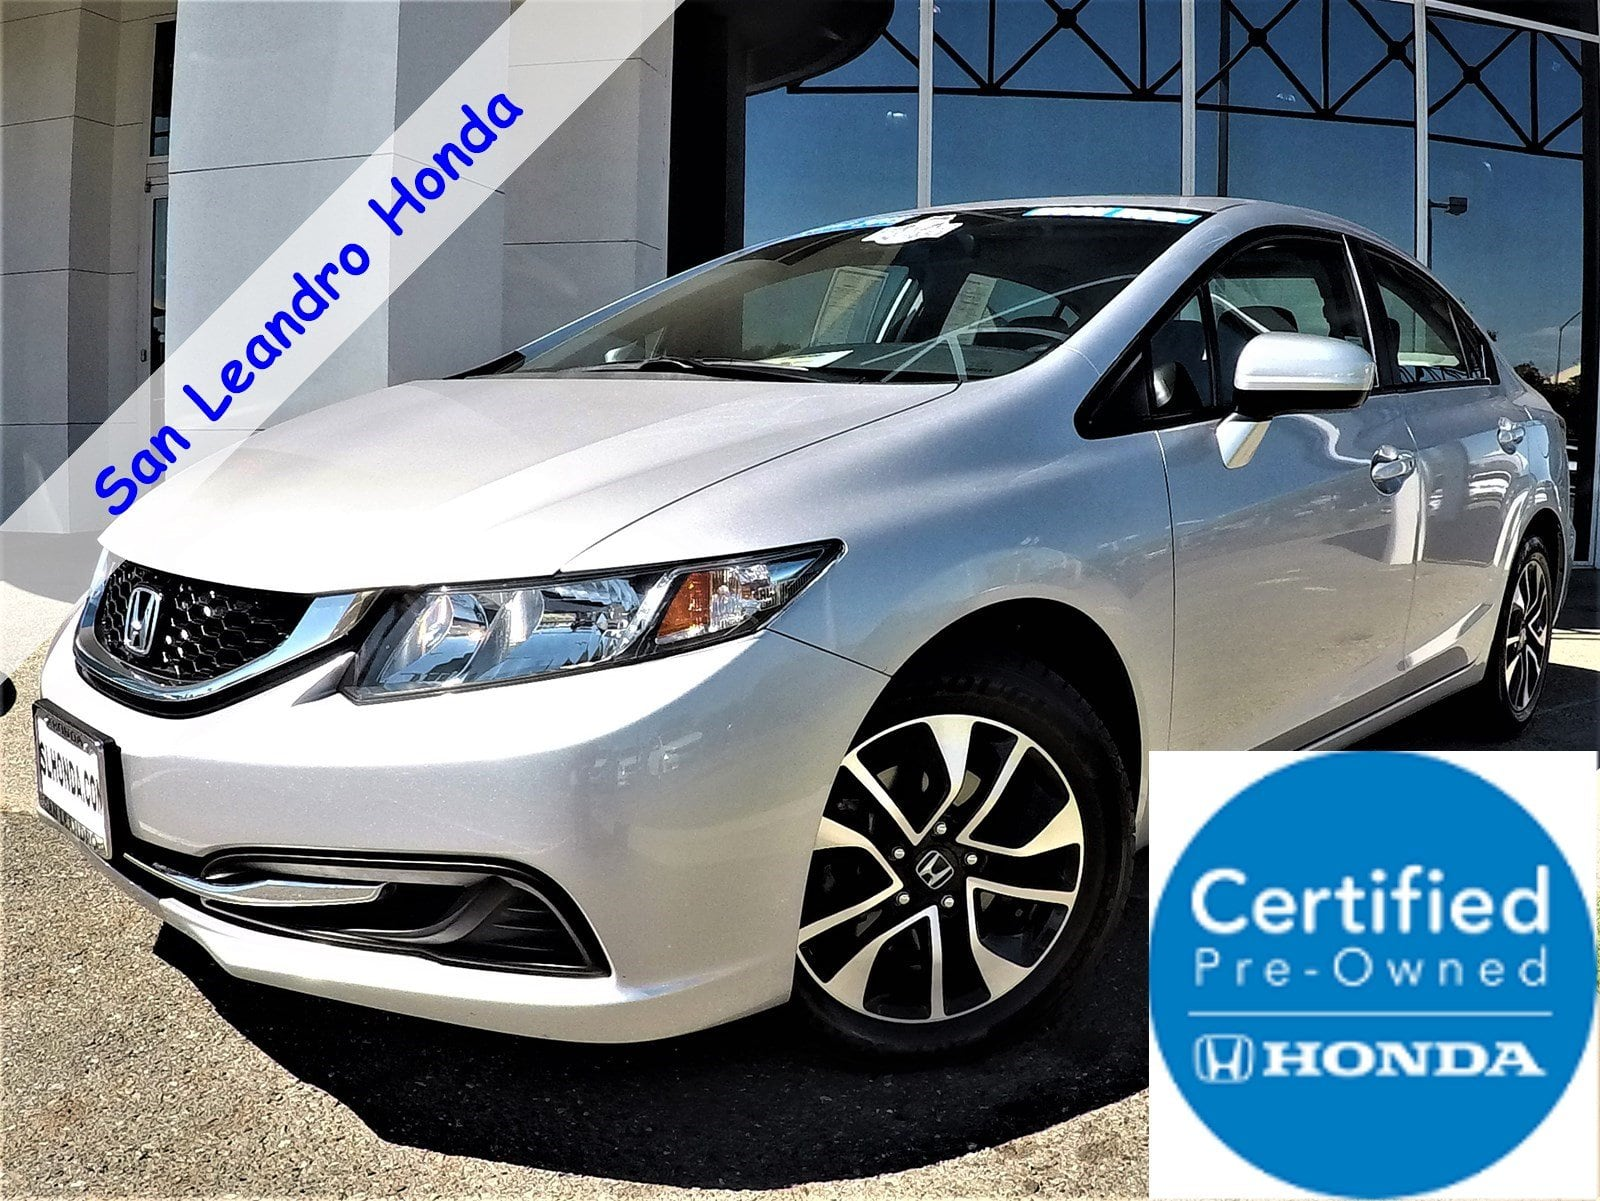 Honda Certified Used Cars Awesome Used Honda Inventory for Sale In Bay area Oakland Alameda Hayward